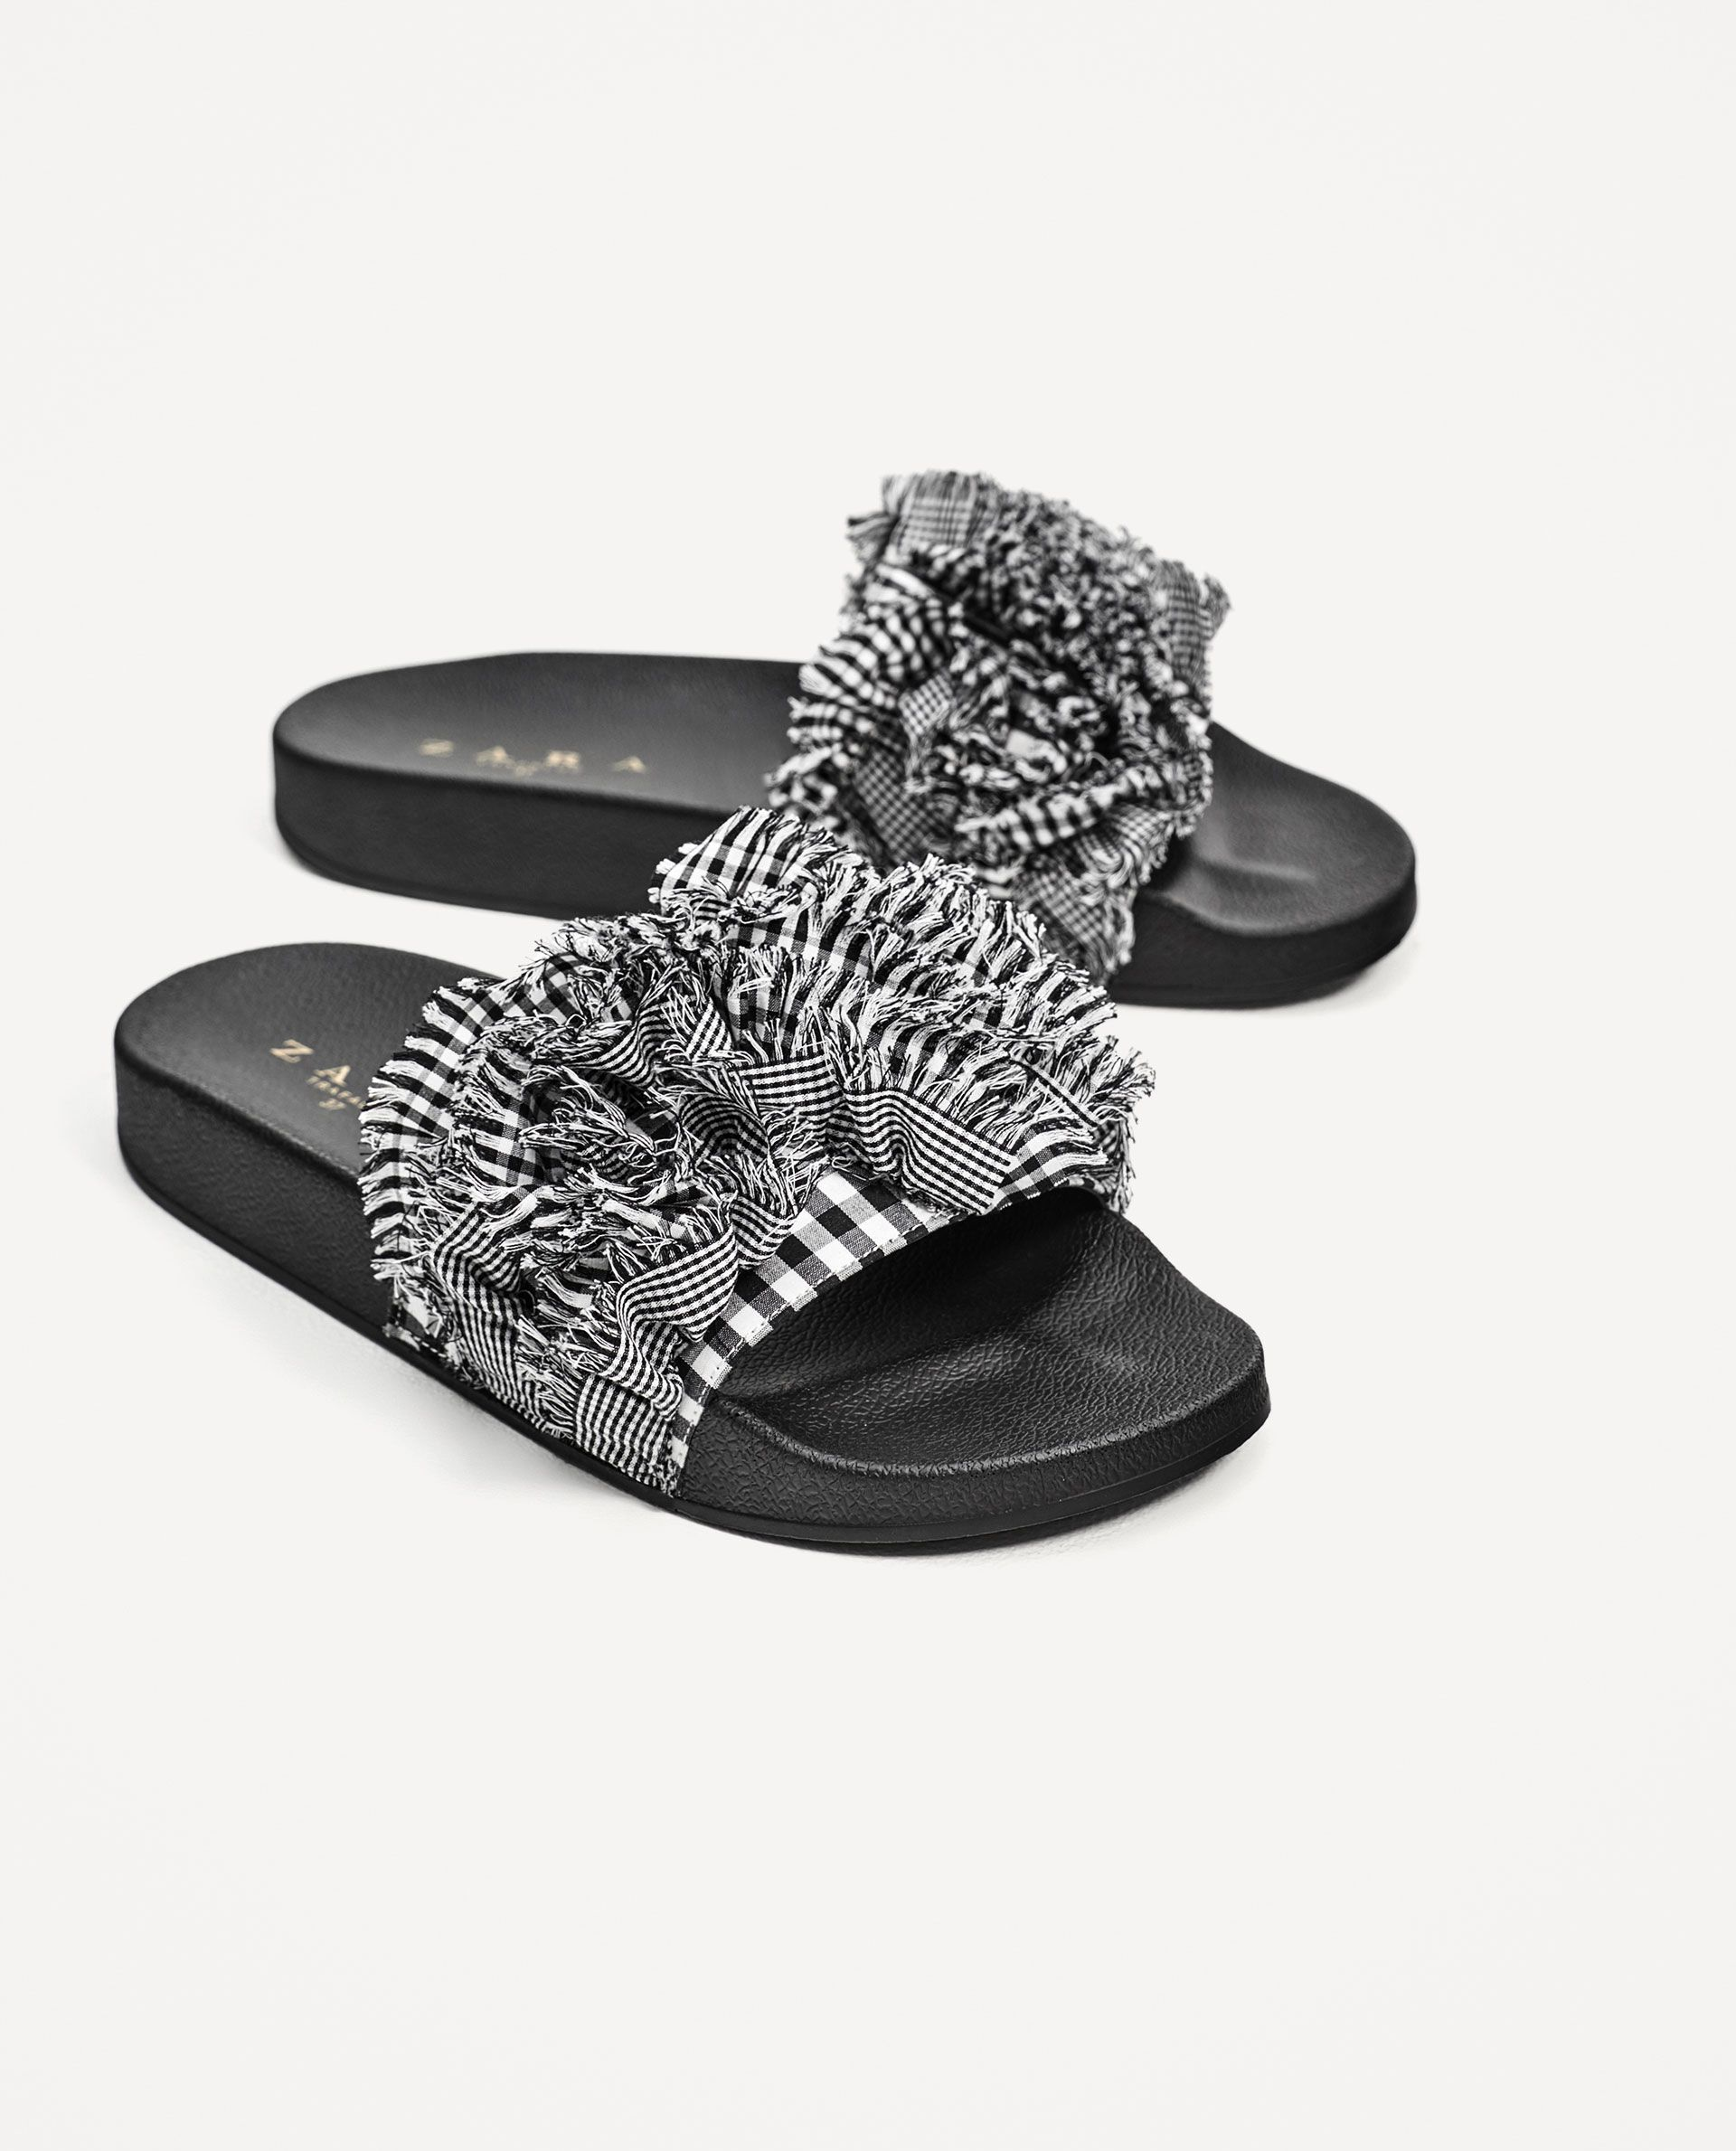 0bc852a0fe Image 1 of GINGHAM SLIDES from Zara | SANDALS | Shoes, Sock shoes ...